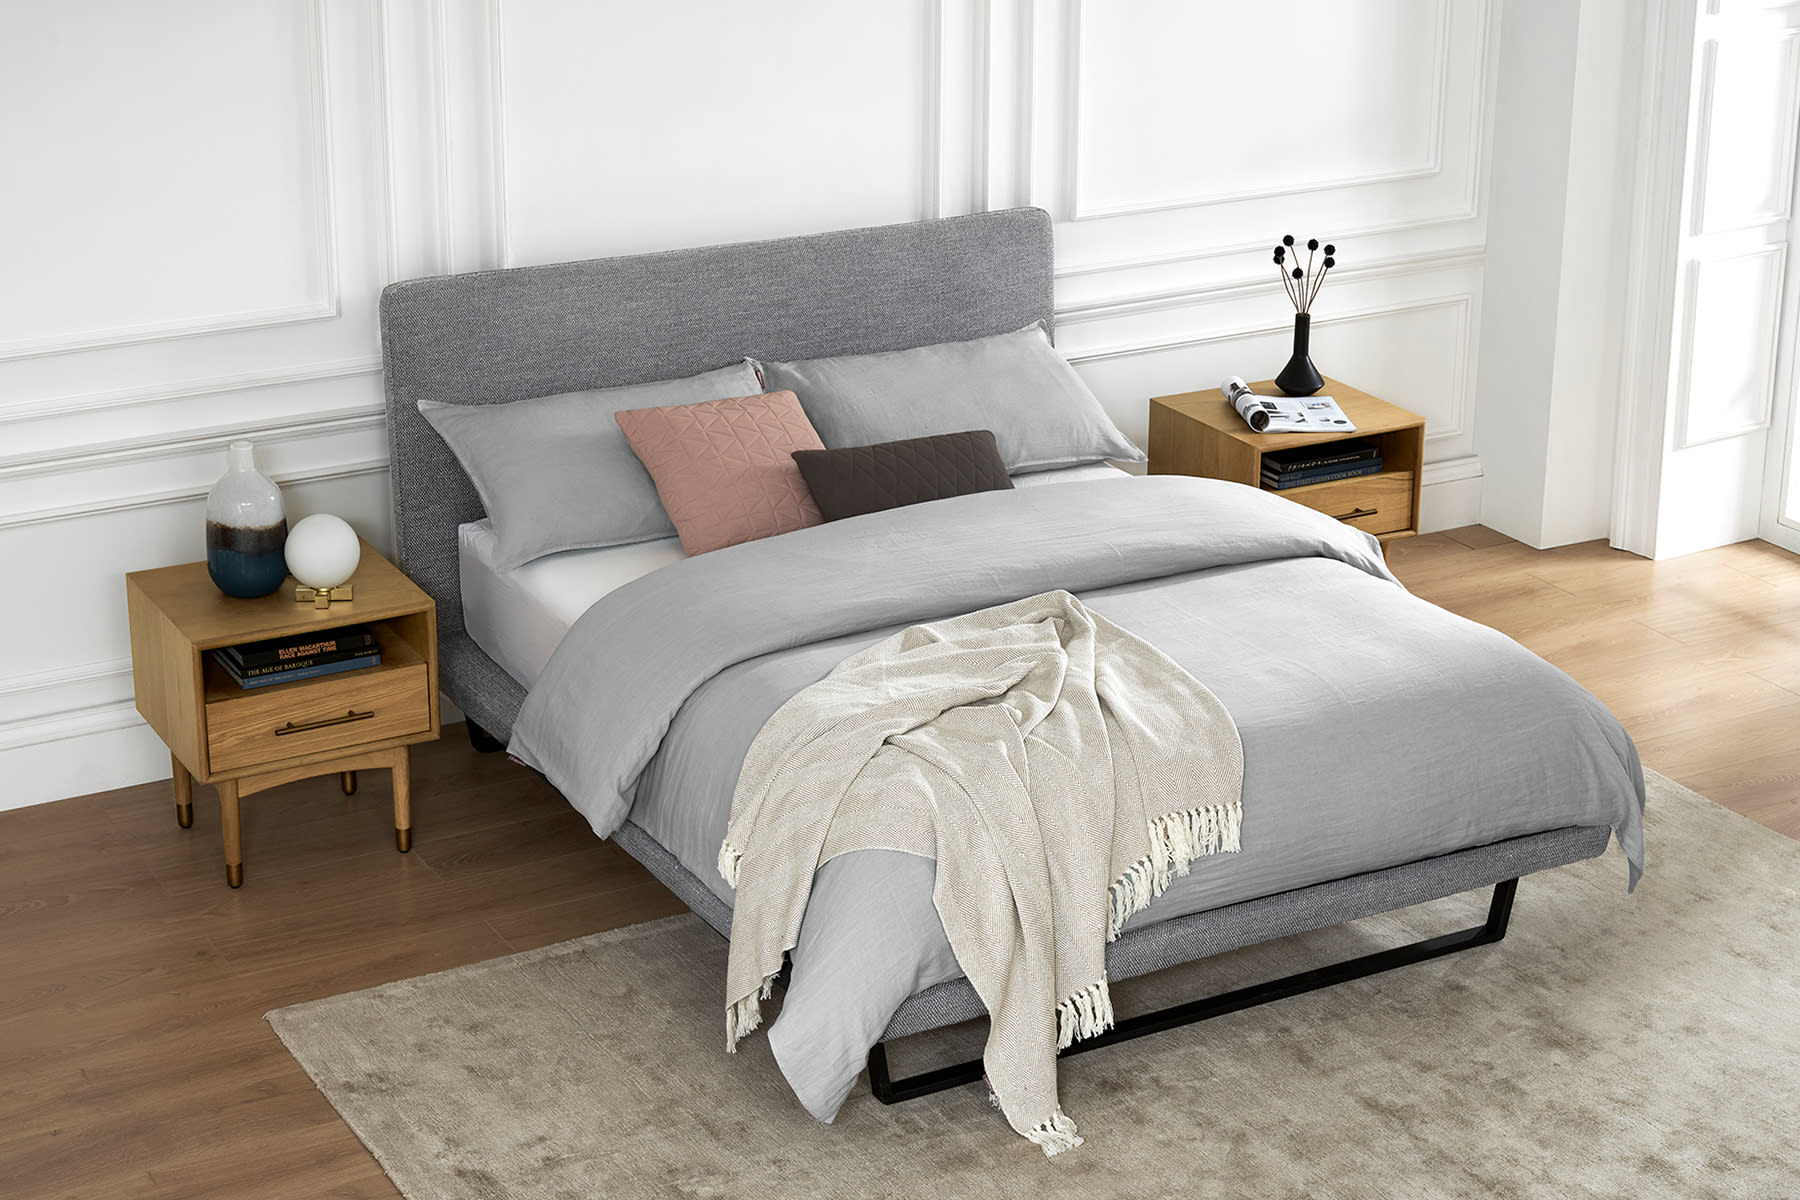 light gray upholstered fabric bed with sofa, bedside table and plant in bright room